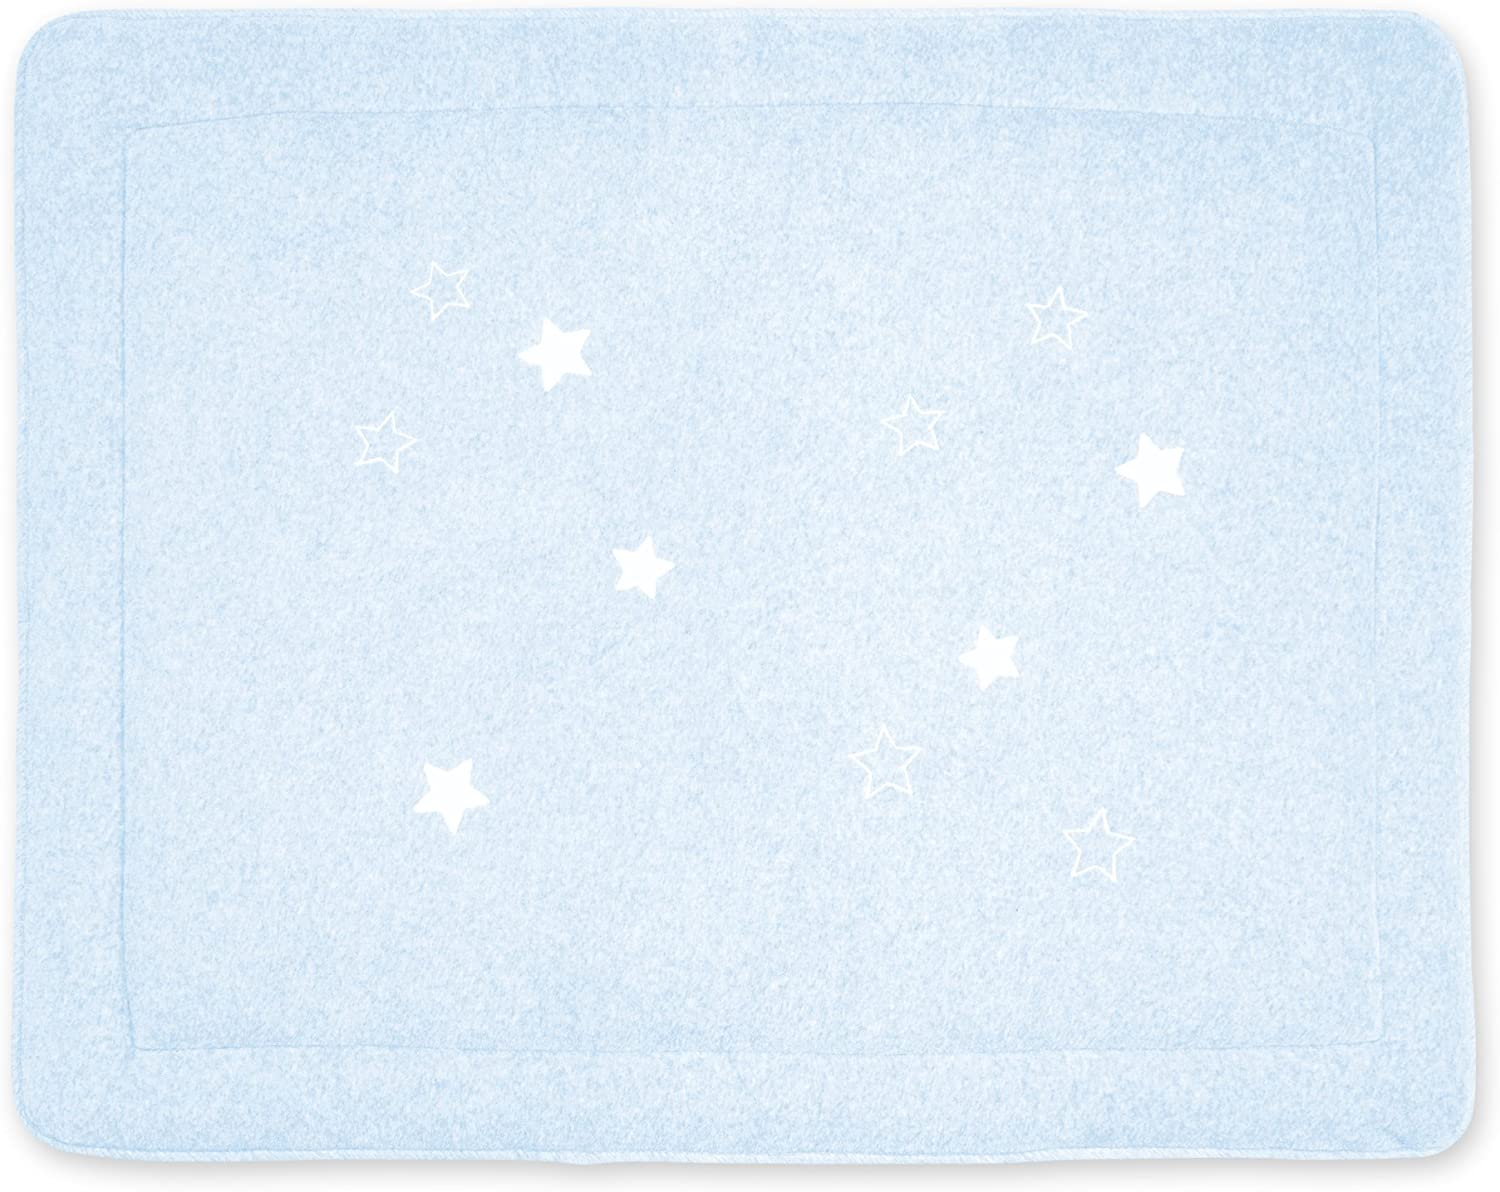 Bemini Terry Play Mat, 75 x 95 cm, Stary Frost Mixed 61